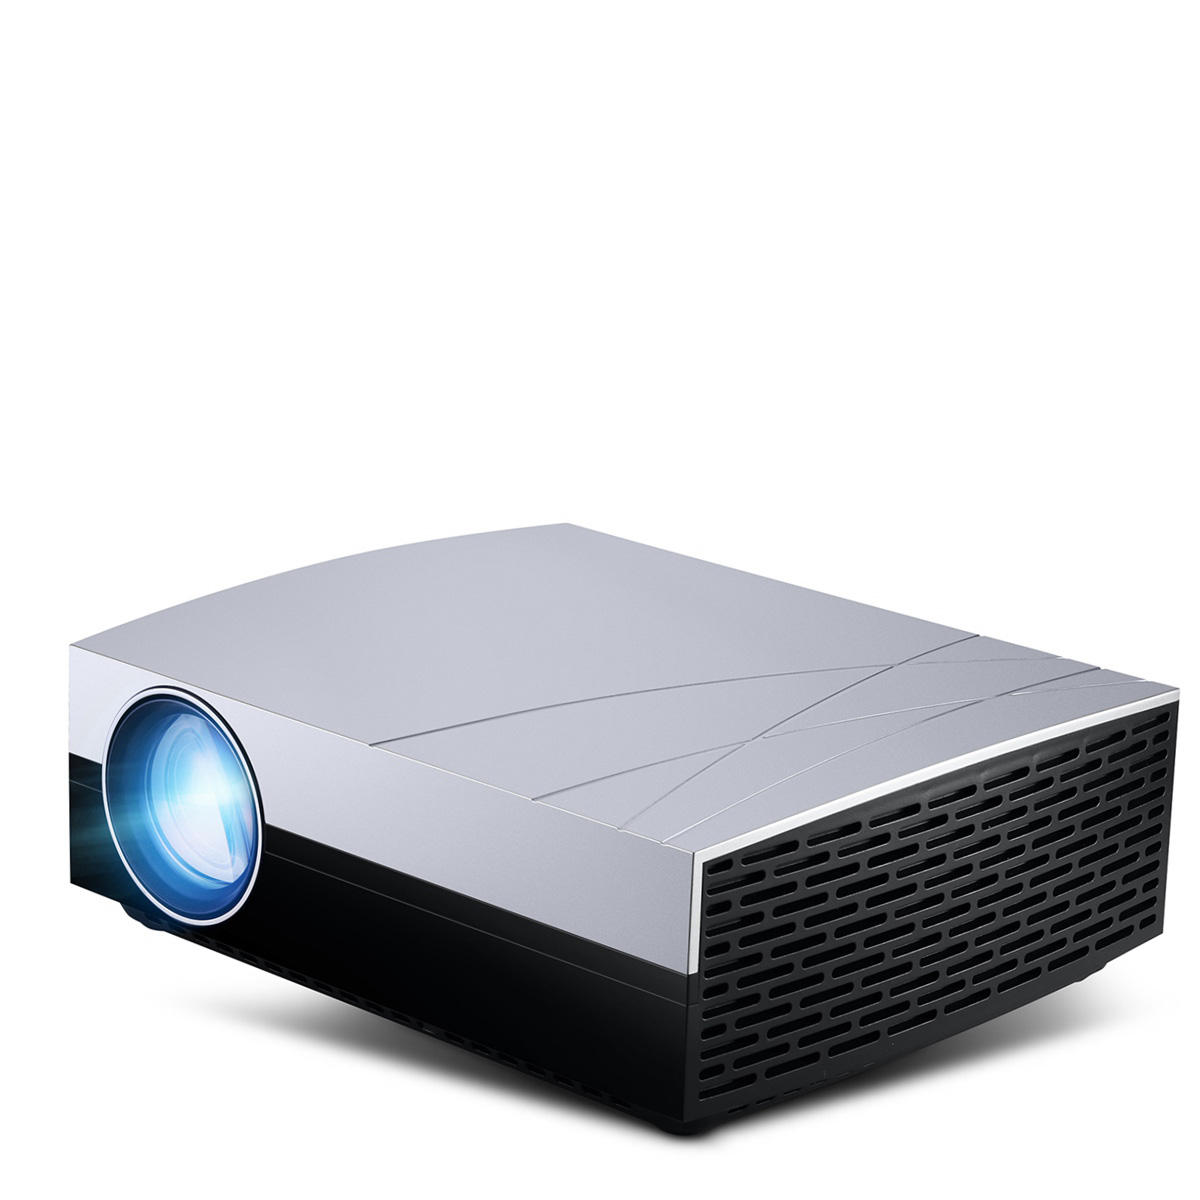 Vivibright F20UP Projector Android 6.0 1280x800 HD 1080P 3000 Lumens2000:1 Contrast Ratio LED Video Home Cinema Projec